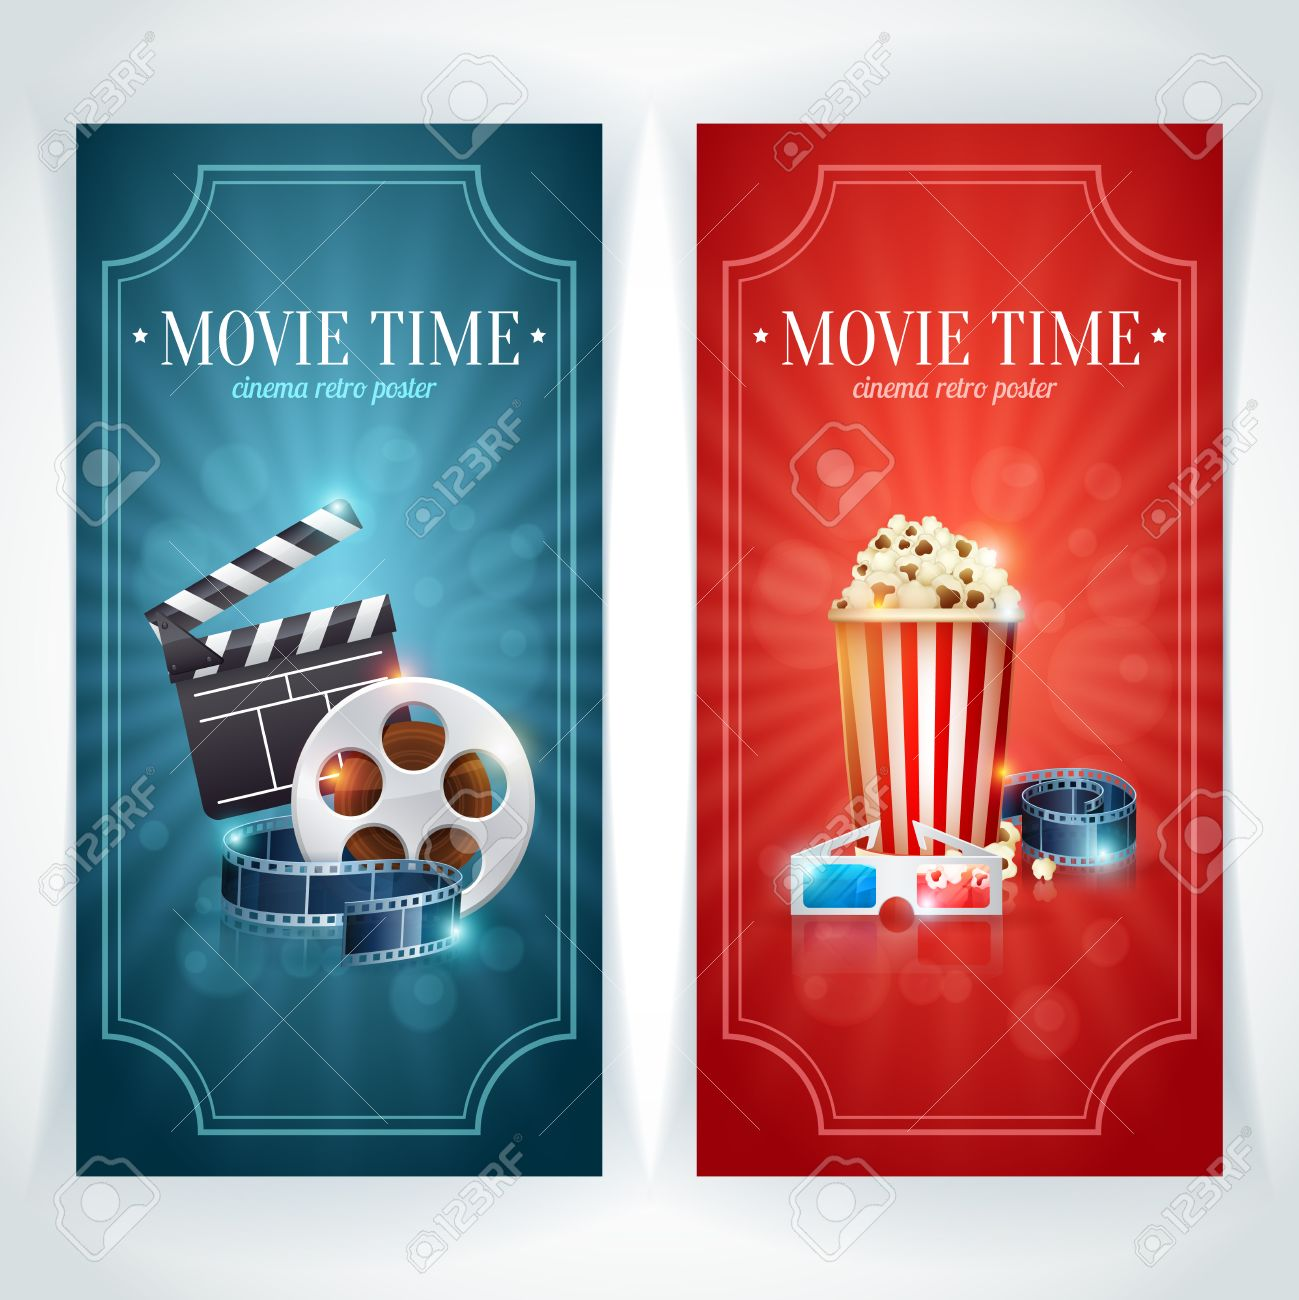 Cool 1099 Template Excel Small 1099 Template Word Clean 2014 Monthly Calendar Templates 2015 Template Calendar Old 3d Animator Resume Templates Purple3d Character Modeler Resume Realistic Cinema Movie Poster Template With Film Reel, Clapper ..